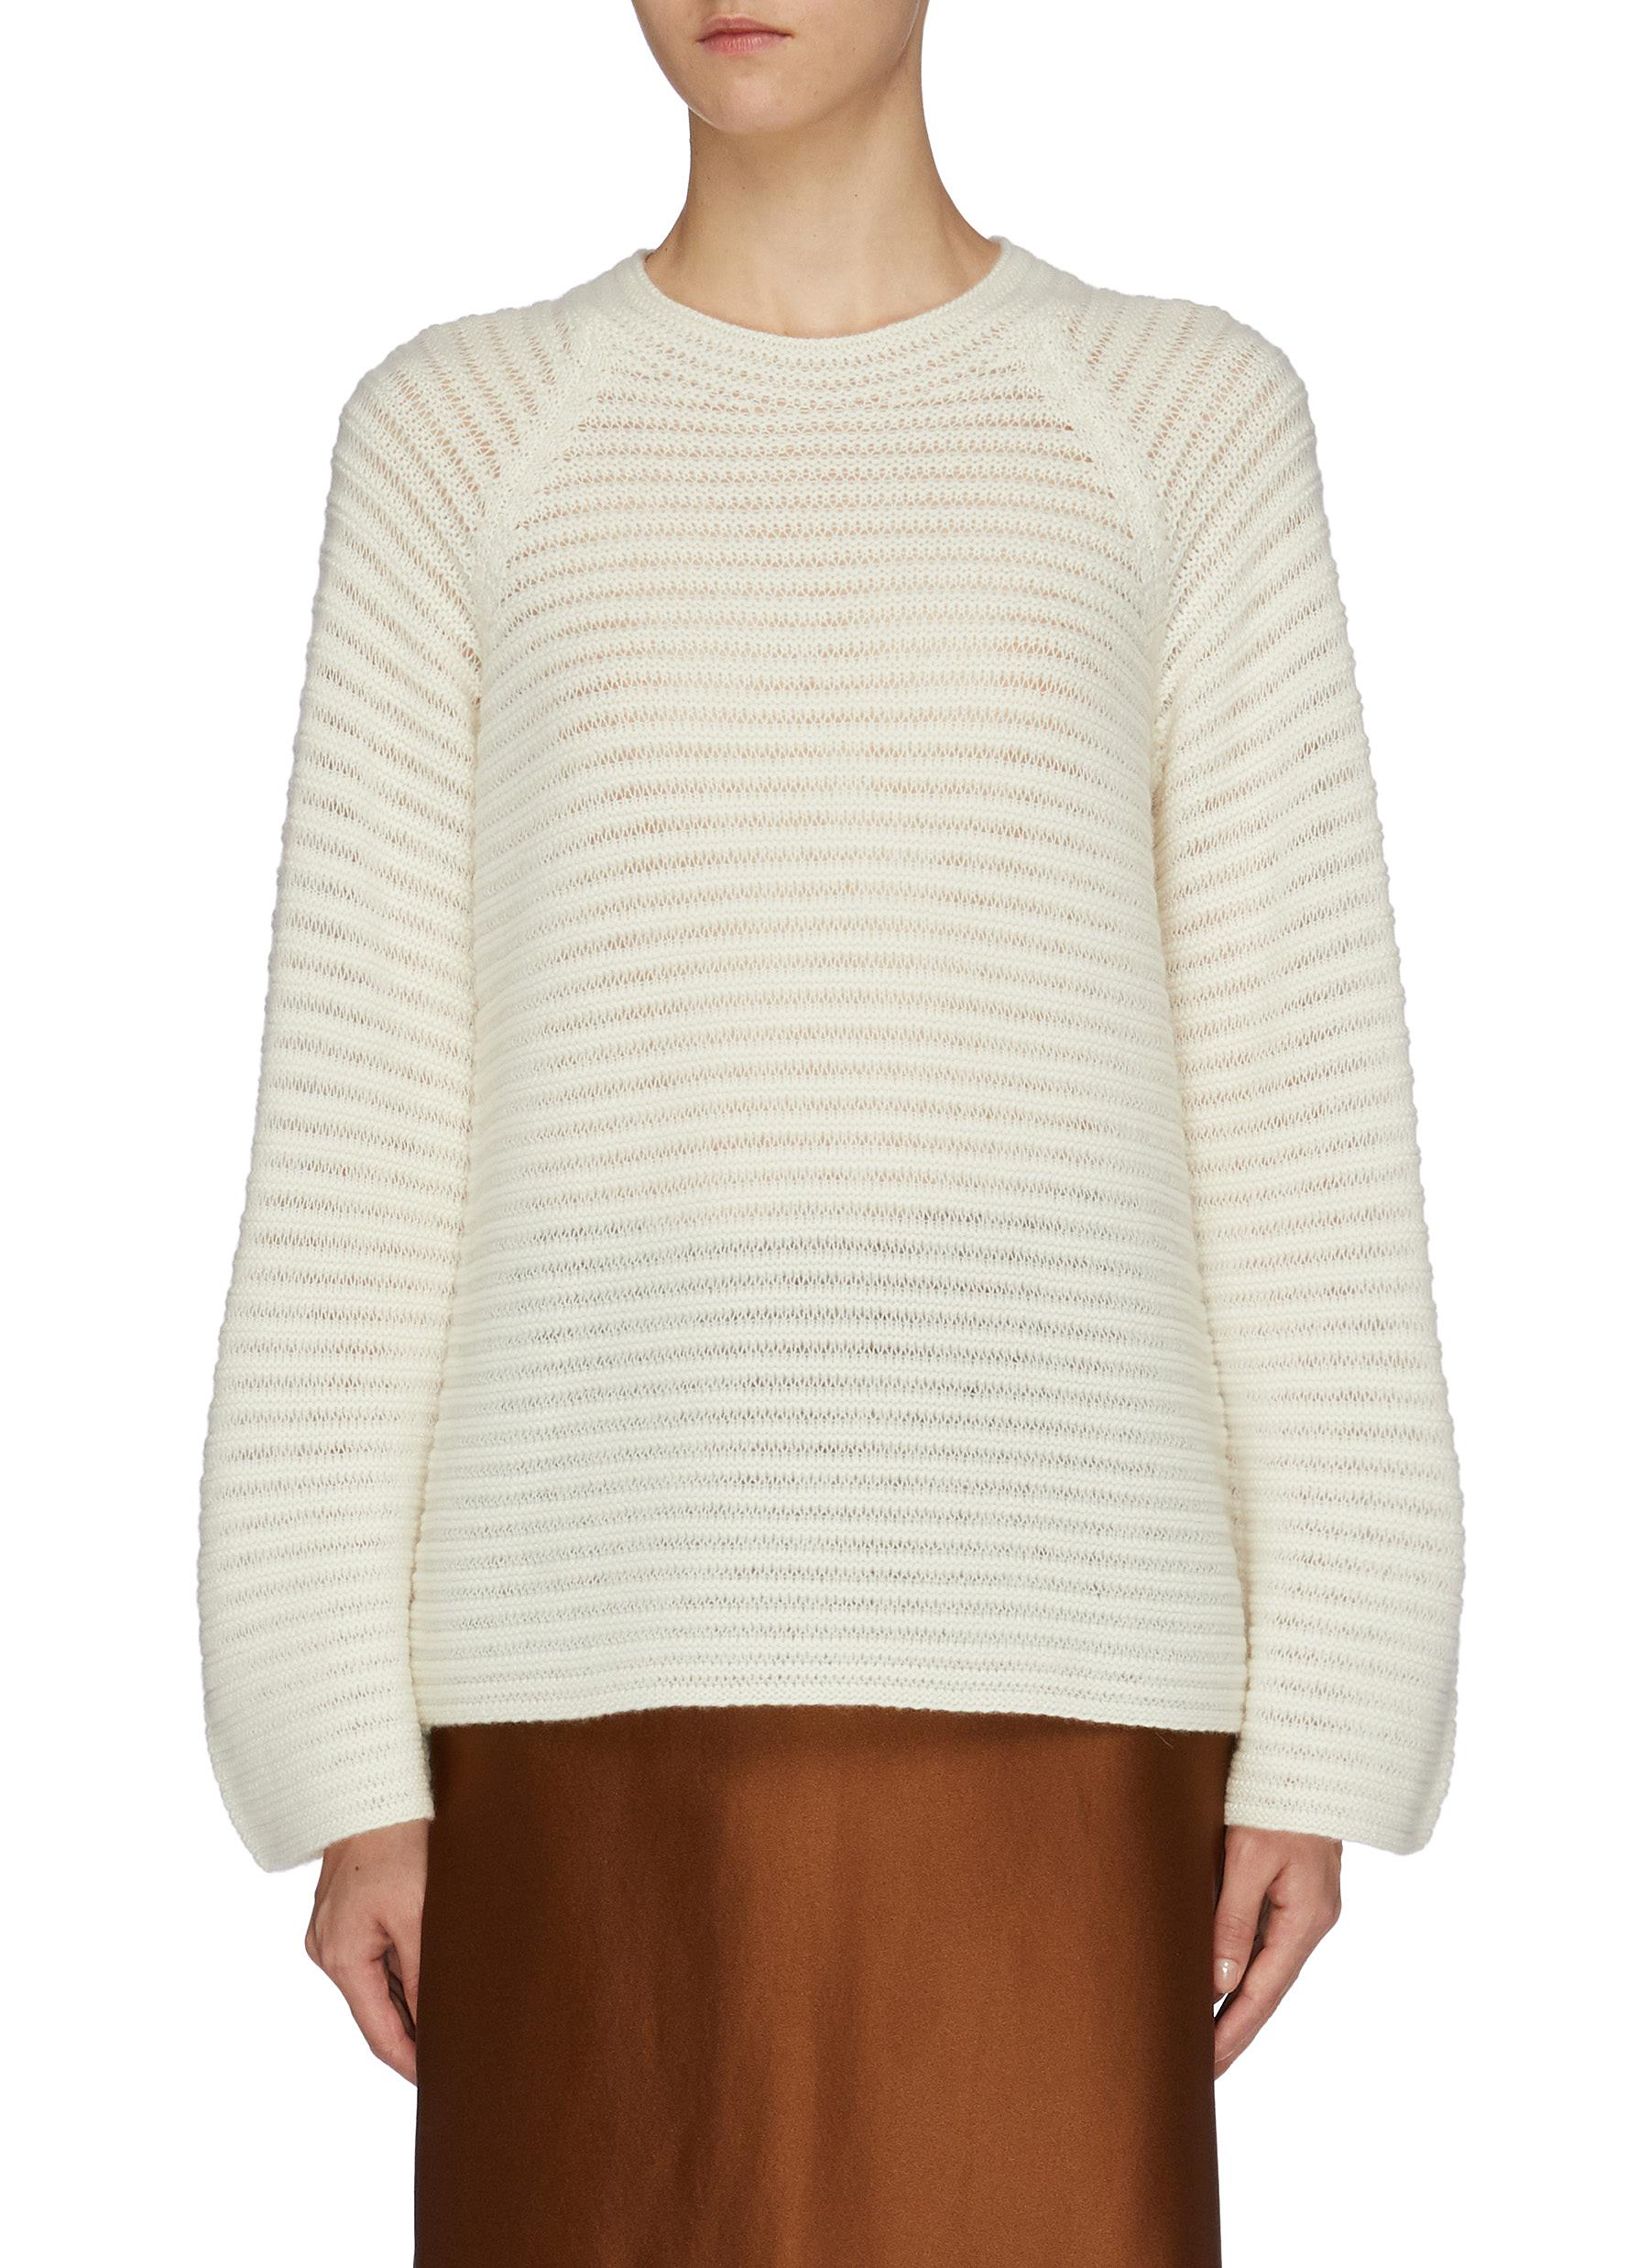 Stripe cashmere open knit sweater by Theory